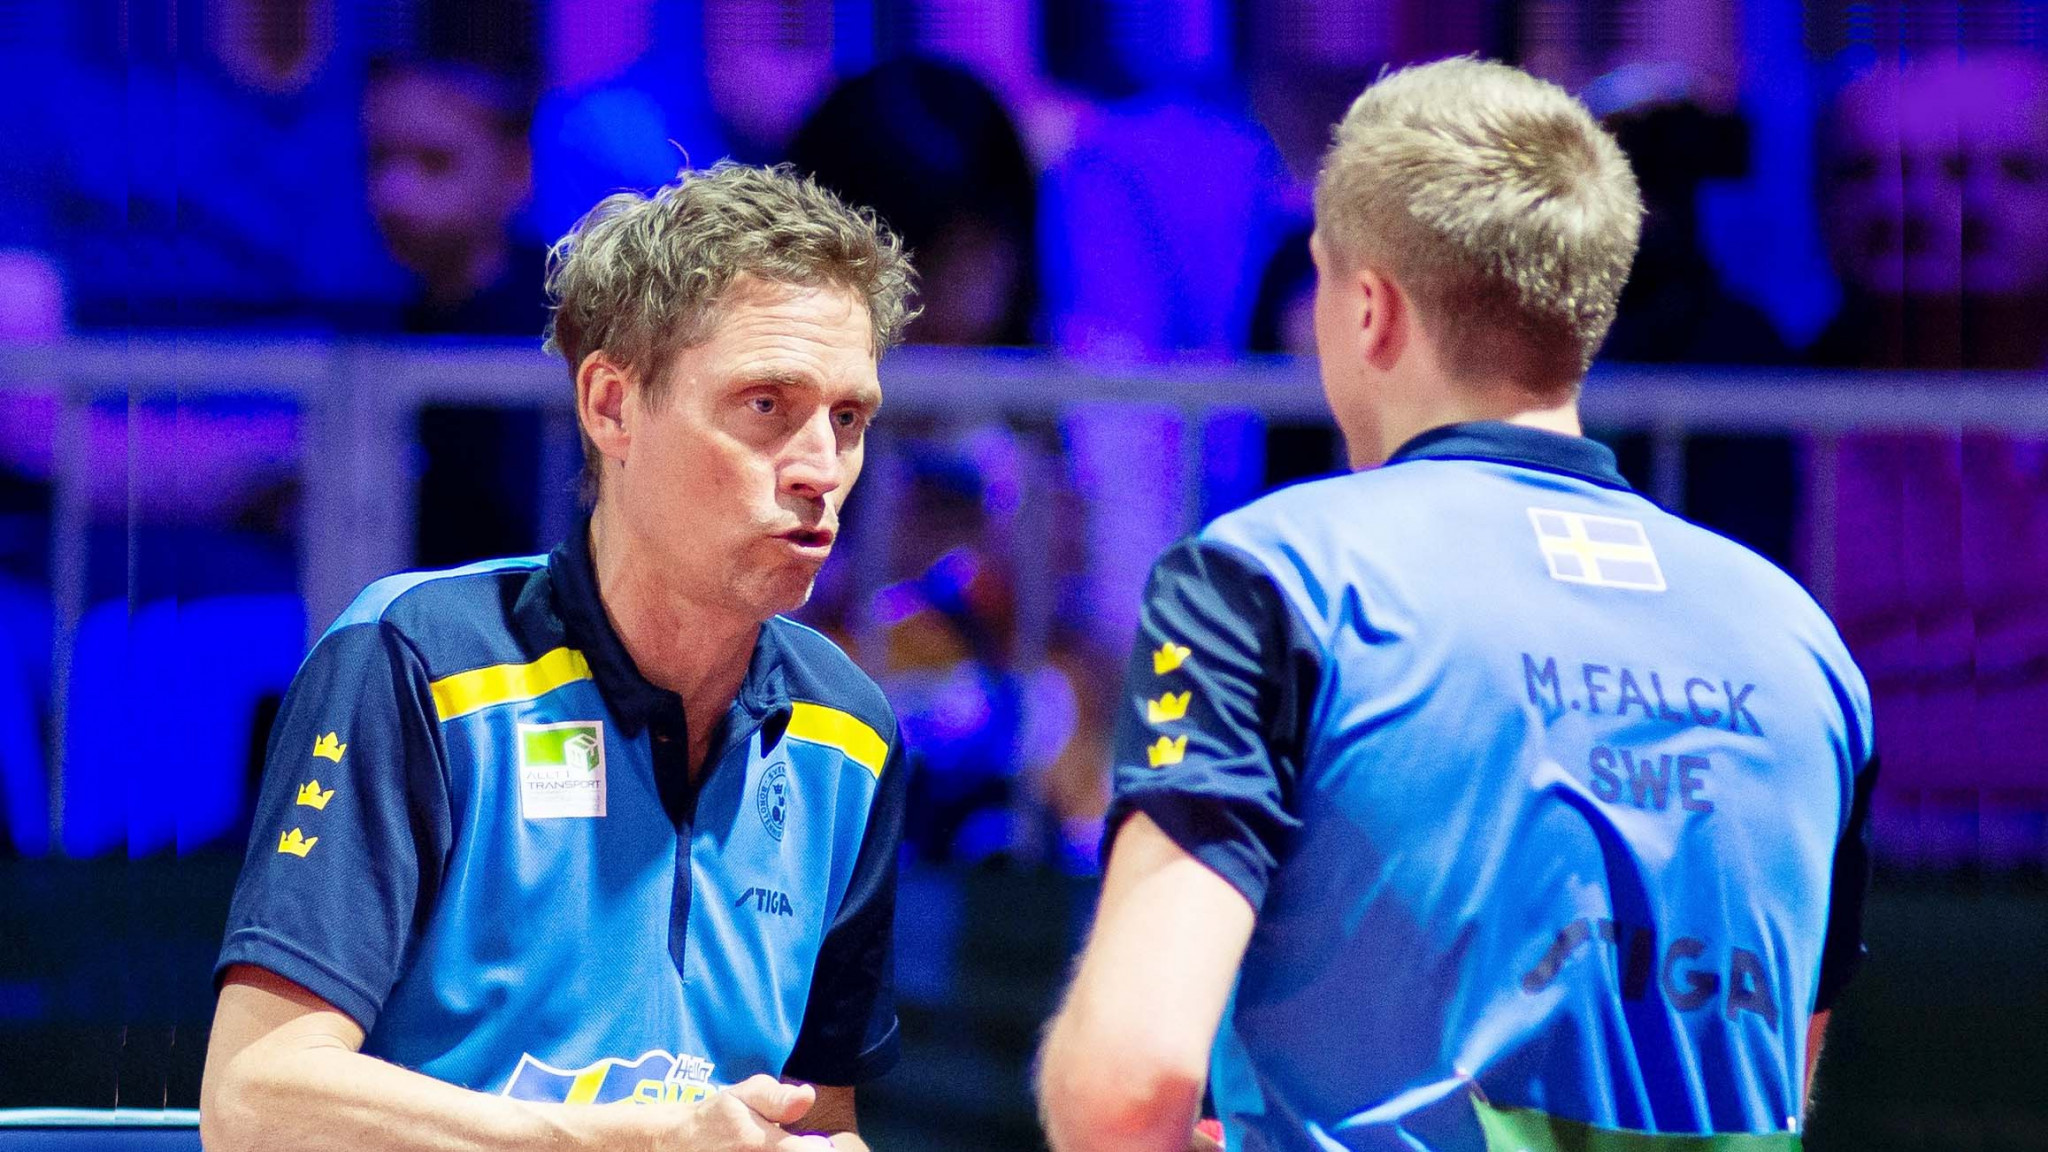 Jörgen Persson returns to the team that he won accolades with during the 1980s and 1990s ©Twitter/@ITTFworld